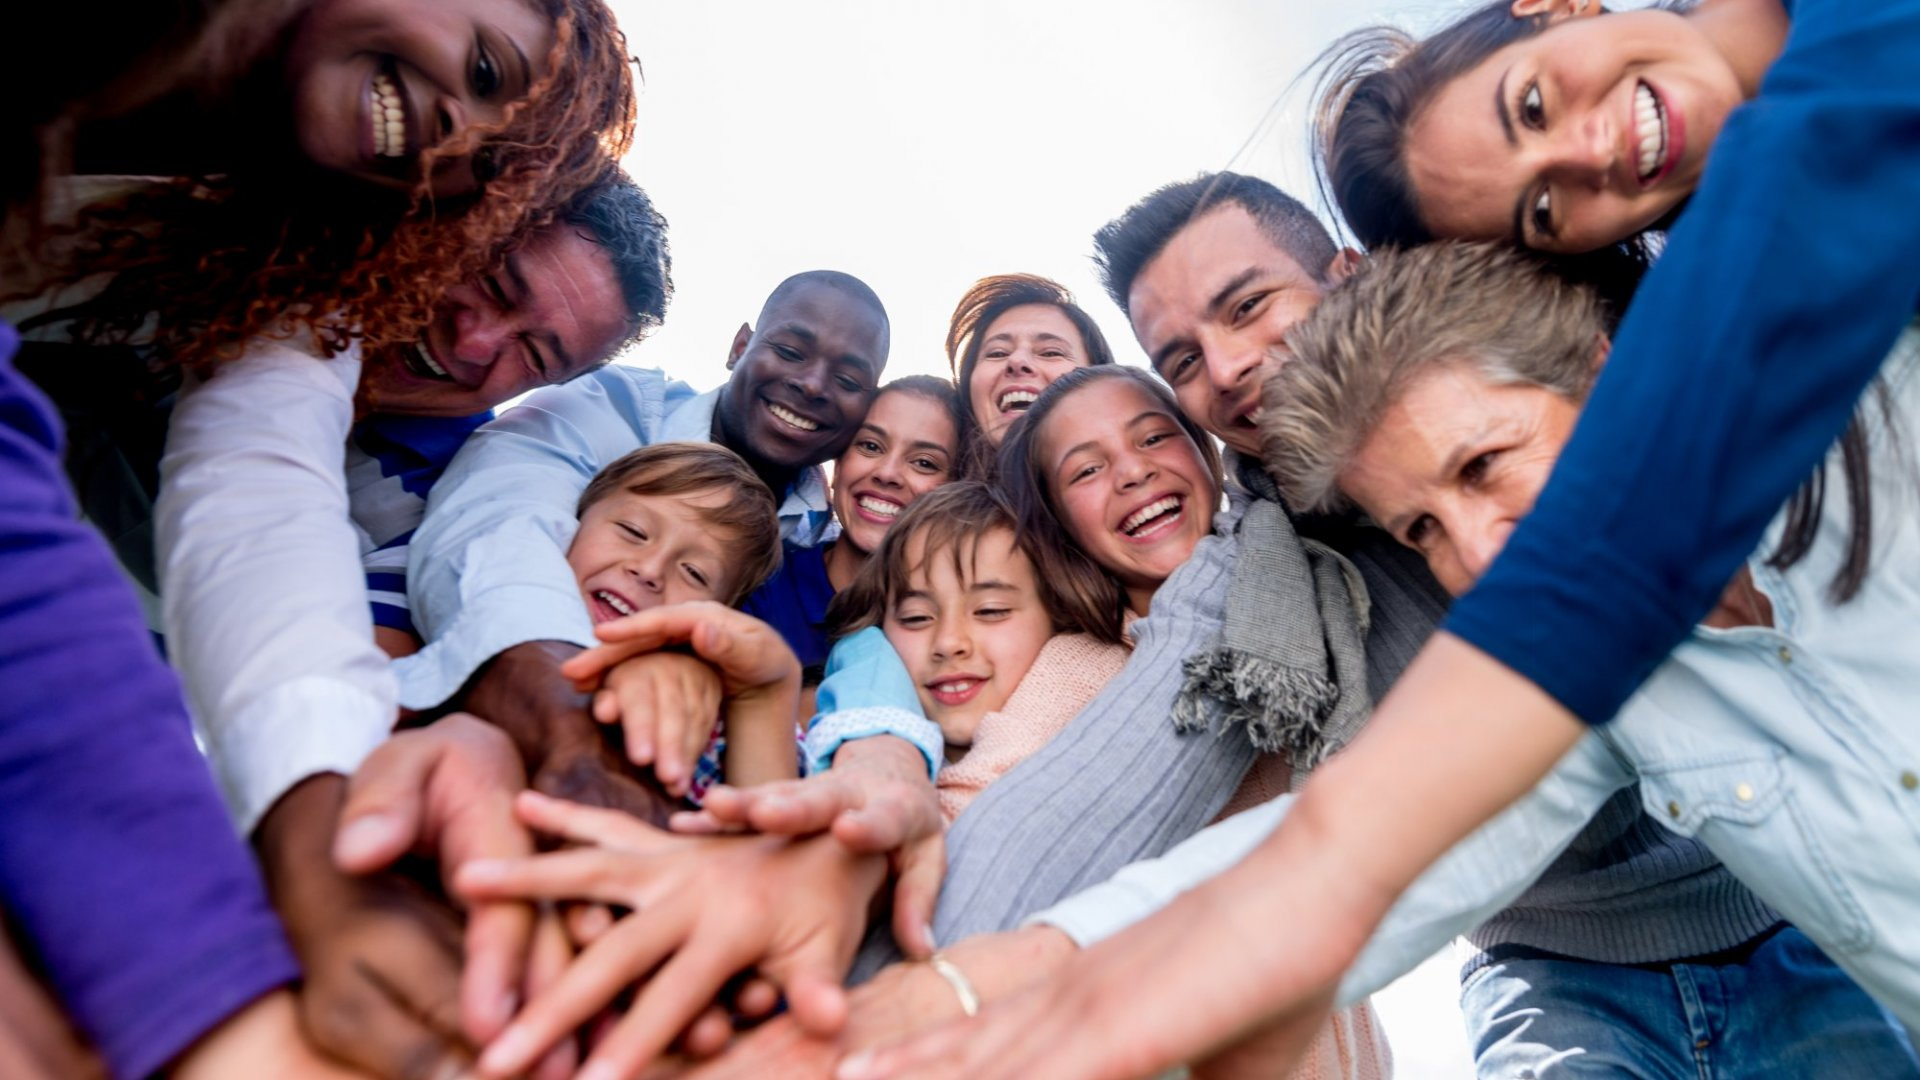 7 Things You Have to Do to Build a Powerful Community